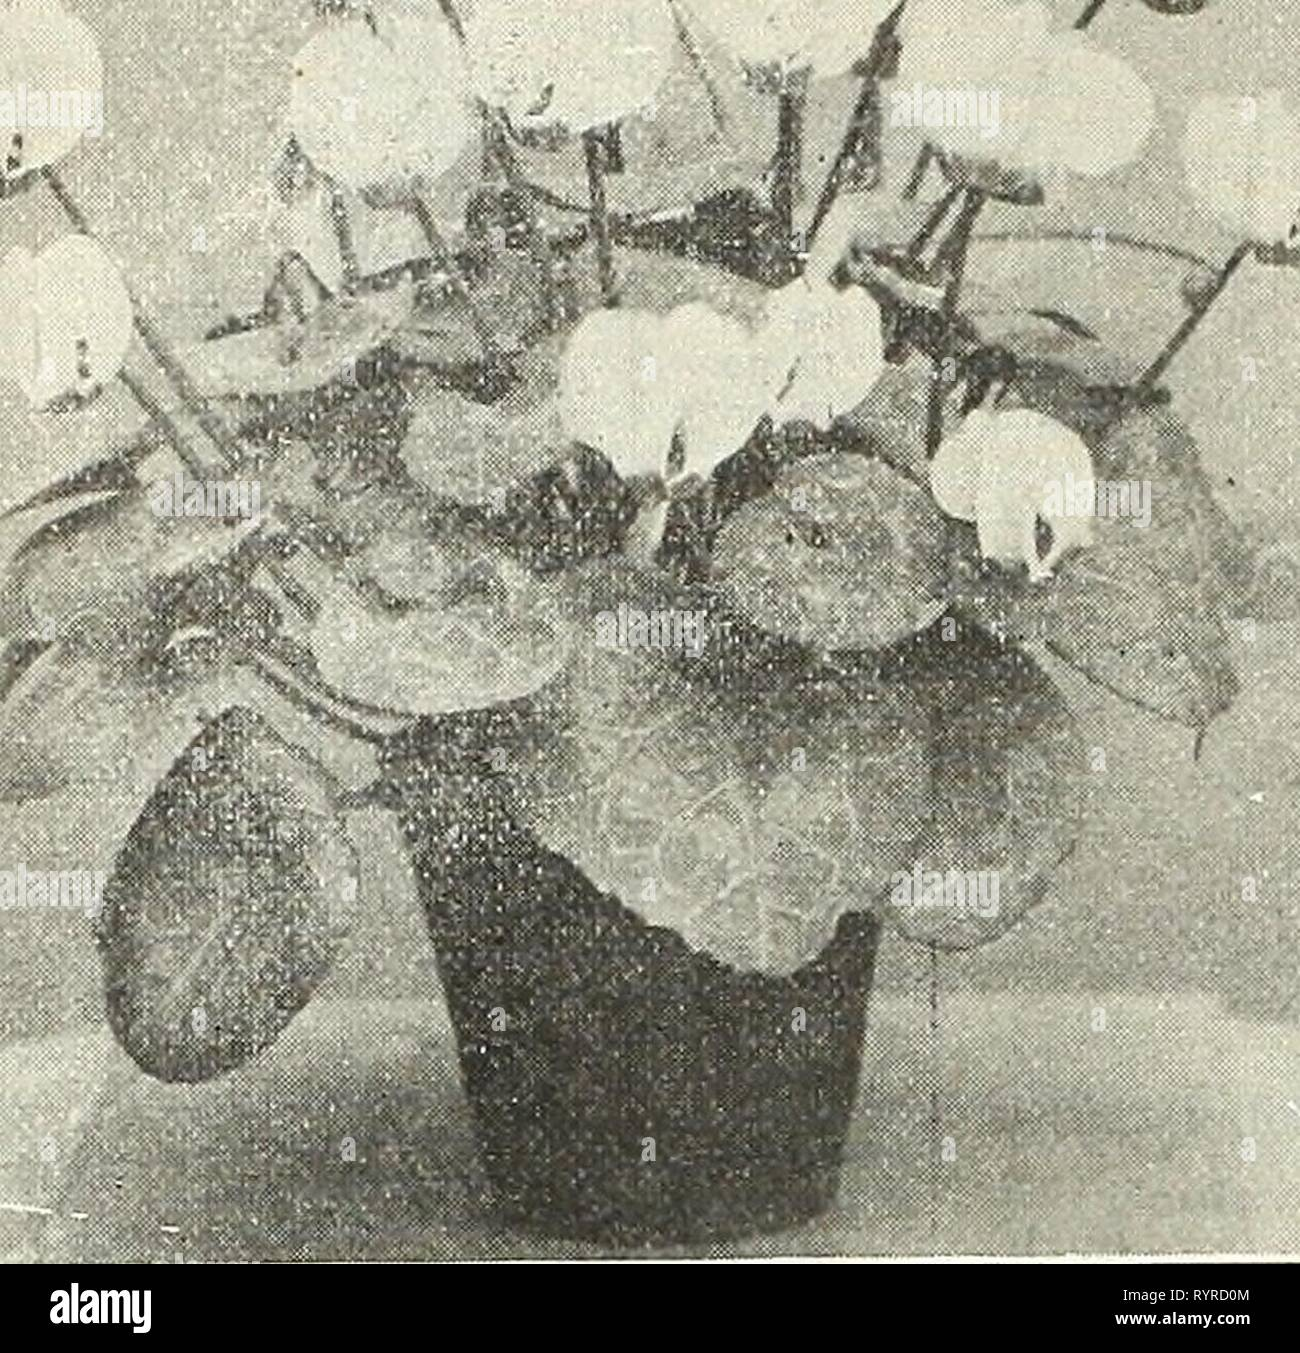 Dreer's wholesale price list  Dreer's wholesale price list : bulbs plants flower seeds vegetable seeds grass seeds fertilizers, tools, etc., etc . dreerswholesalep1908henr_0 Year: 1908  i6 HENRY A. DREER, Philadelphia, Pa. /<£» -**    CYCLAMEN PERSICUM GIGANTEUM Bougainvillea Glabra, William K. Harris. In this new variety the foliage is beautifully variegated, or rather marbled, with creamy white on a dark green ground. These markings are very decided and the proportion of the two colors is almost equally divided. Not only is the plant valuable for decorative purposes in or out of bloom, b - Stock Image